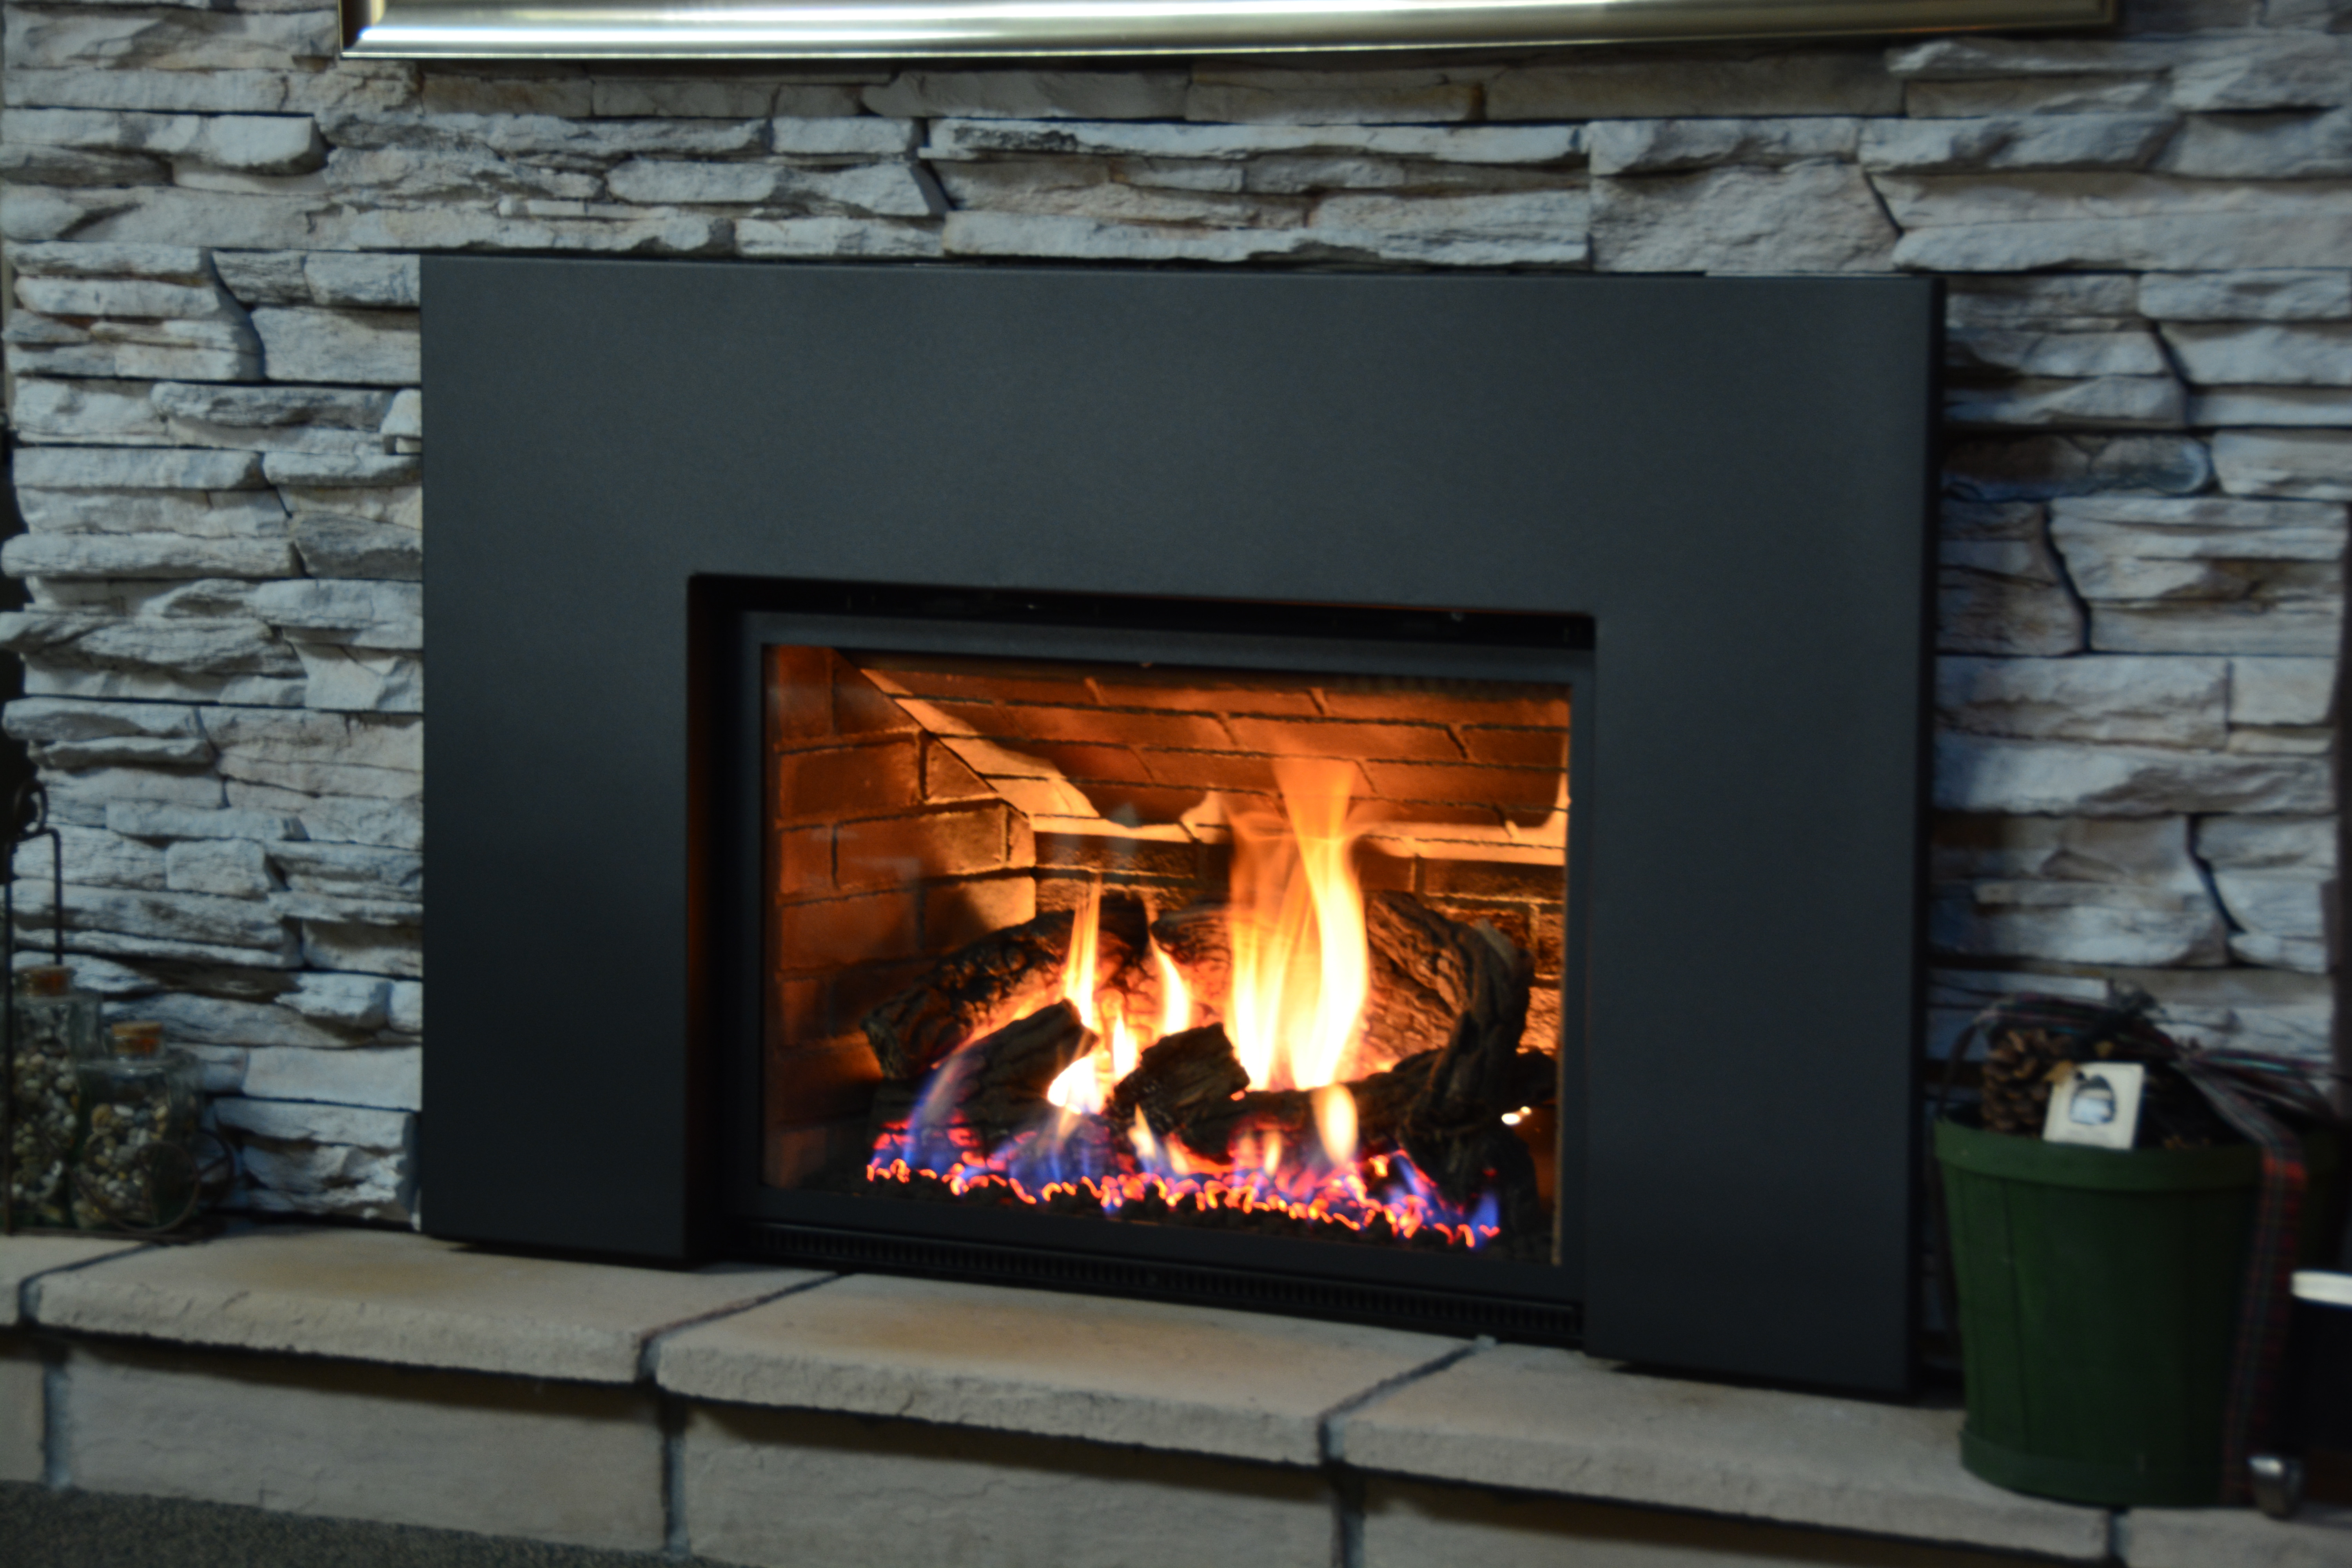 Best ideas about Propane Fireplace Inserts . Save or Pin Ambiance Inspiration Gas Fireplace Inserts Cleveland Now.